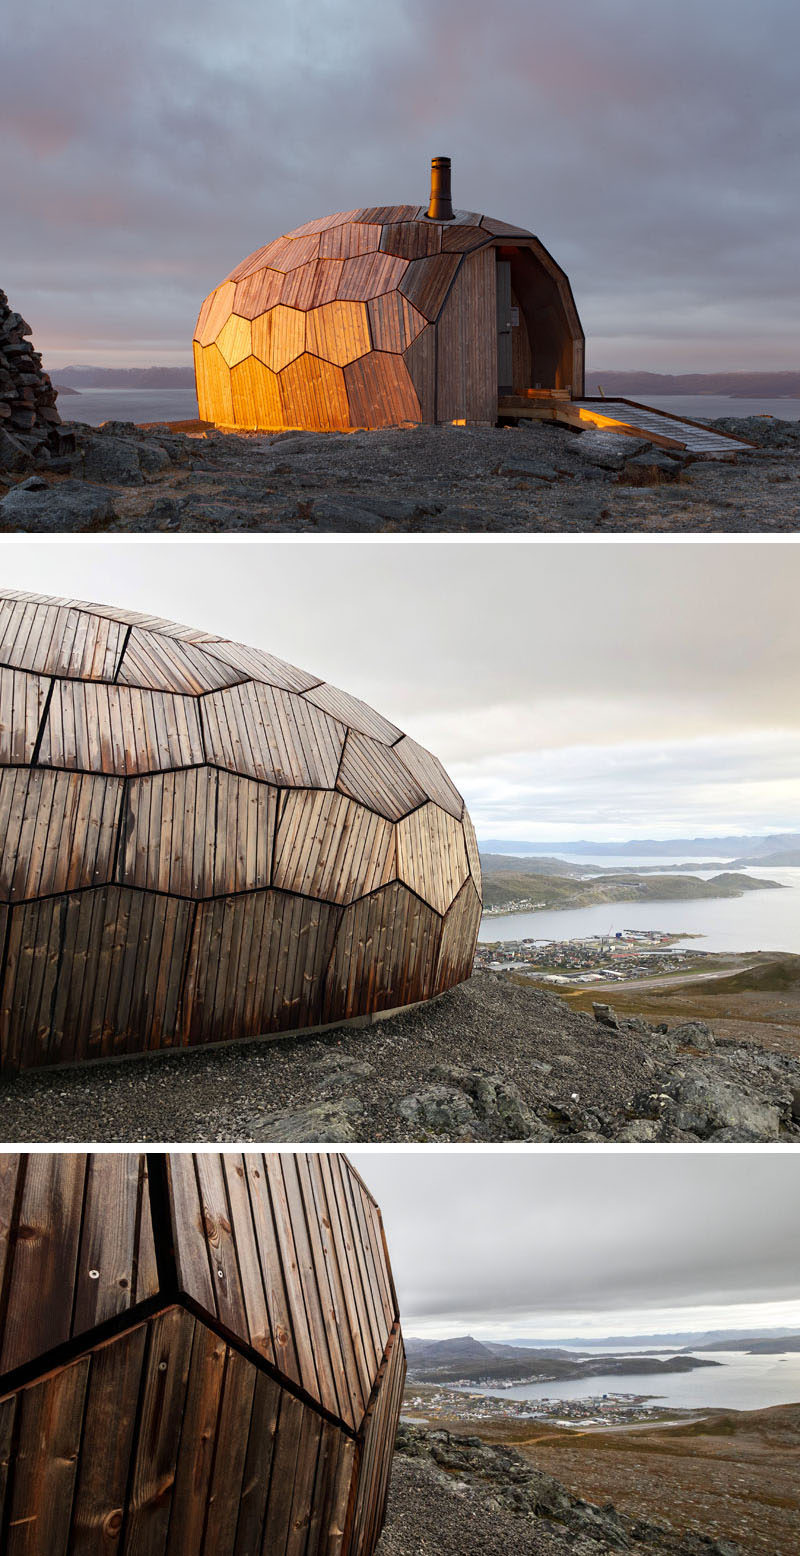 A series of Norwegian day-trip cabins have been designed with an egg-shaped, faceted stone-like appearance made from wood. The rounded shape naturally helps to clear snow, and reduce wind pressure. #Architecture #Cabin